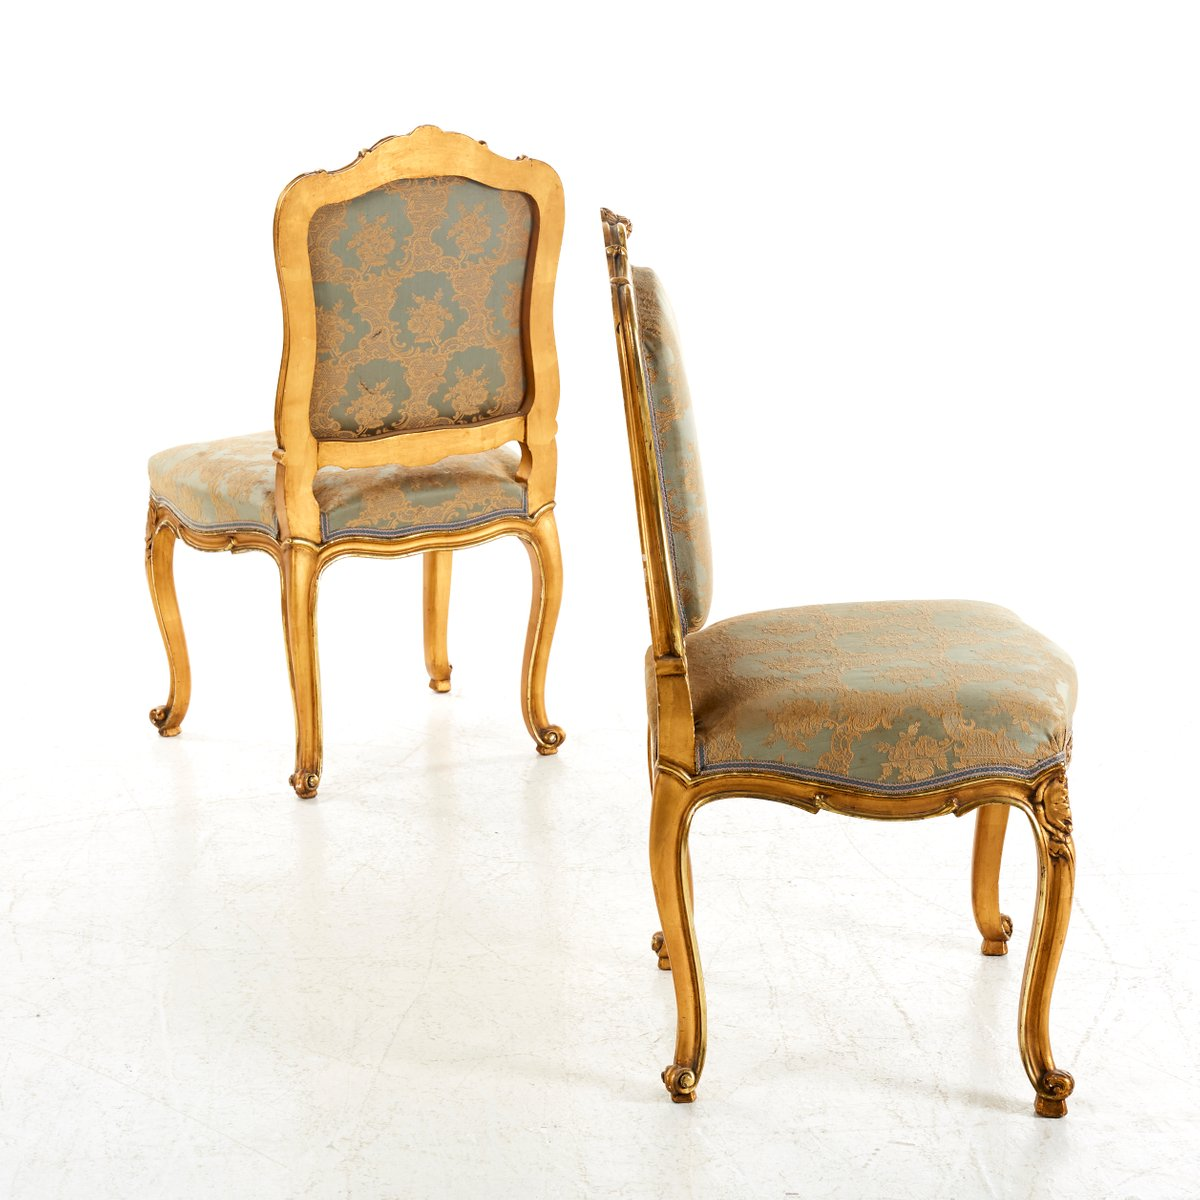 Antique Louis Xv Style Chairs Set Of 2 6 429 00 Per